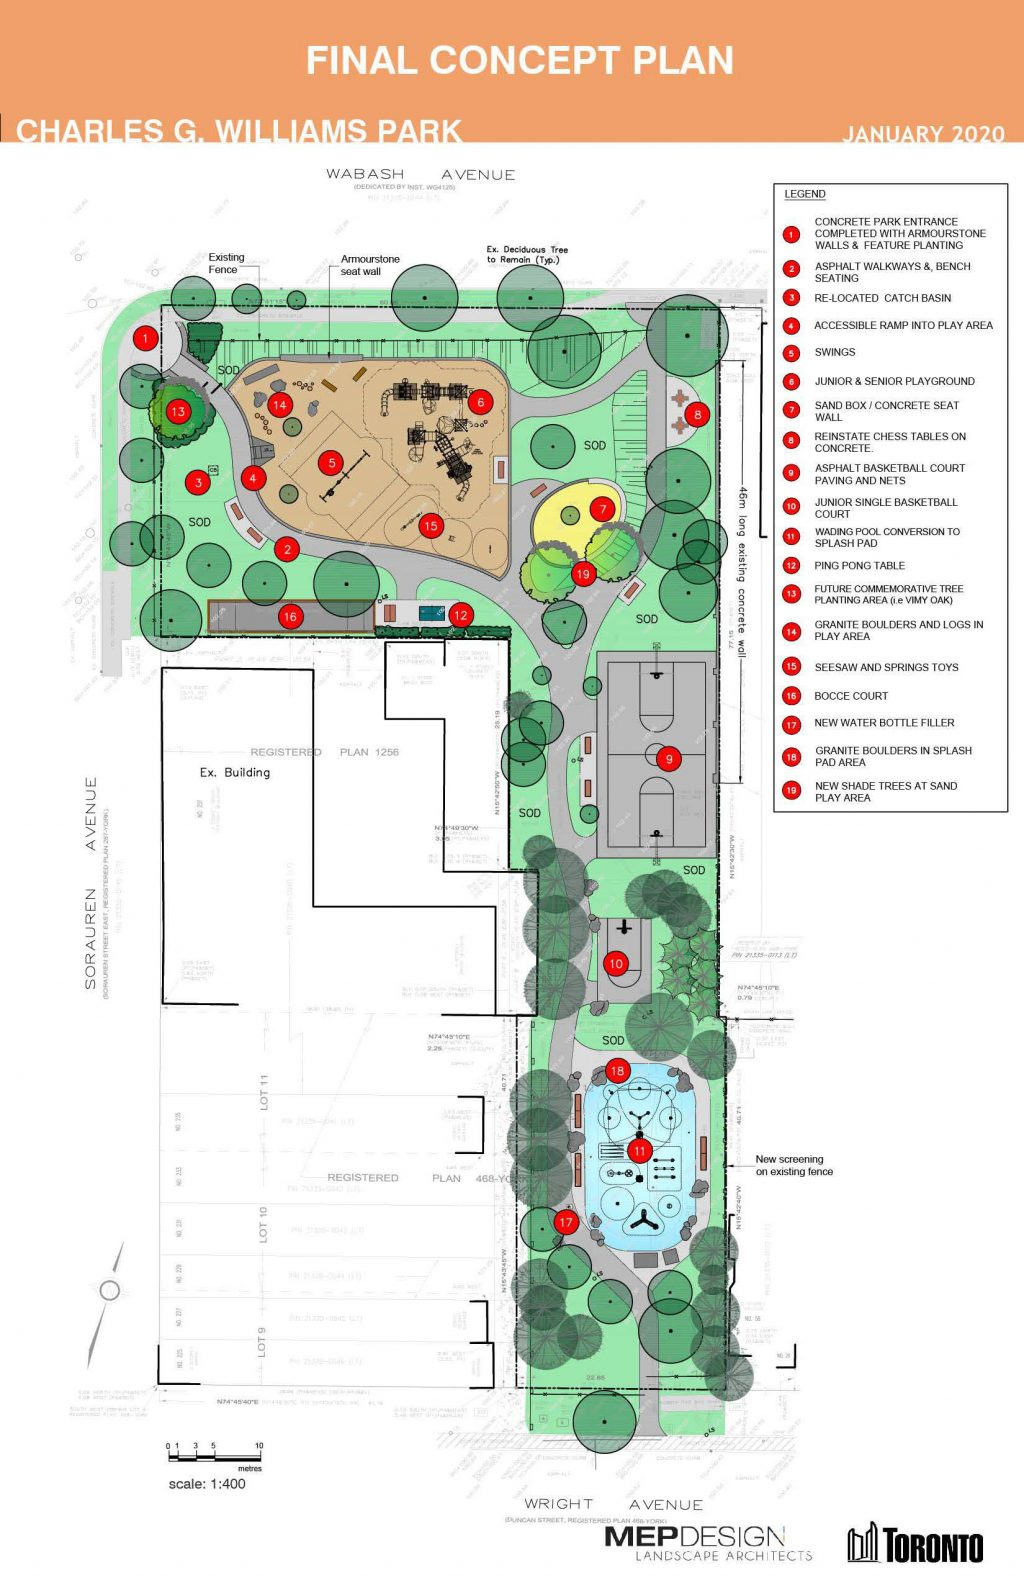 The plan includes upgrades to the existing playground, the conversion of the existing wading pool to a new splash pad, a new junior basketball court, upgrades to the existing basketball court and a new bocce court. New accessible pathways, bench seating and new tree plantings are also included.